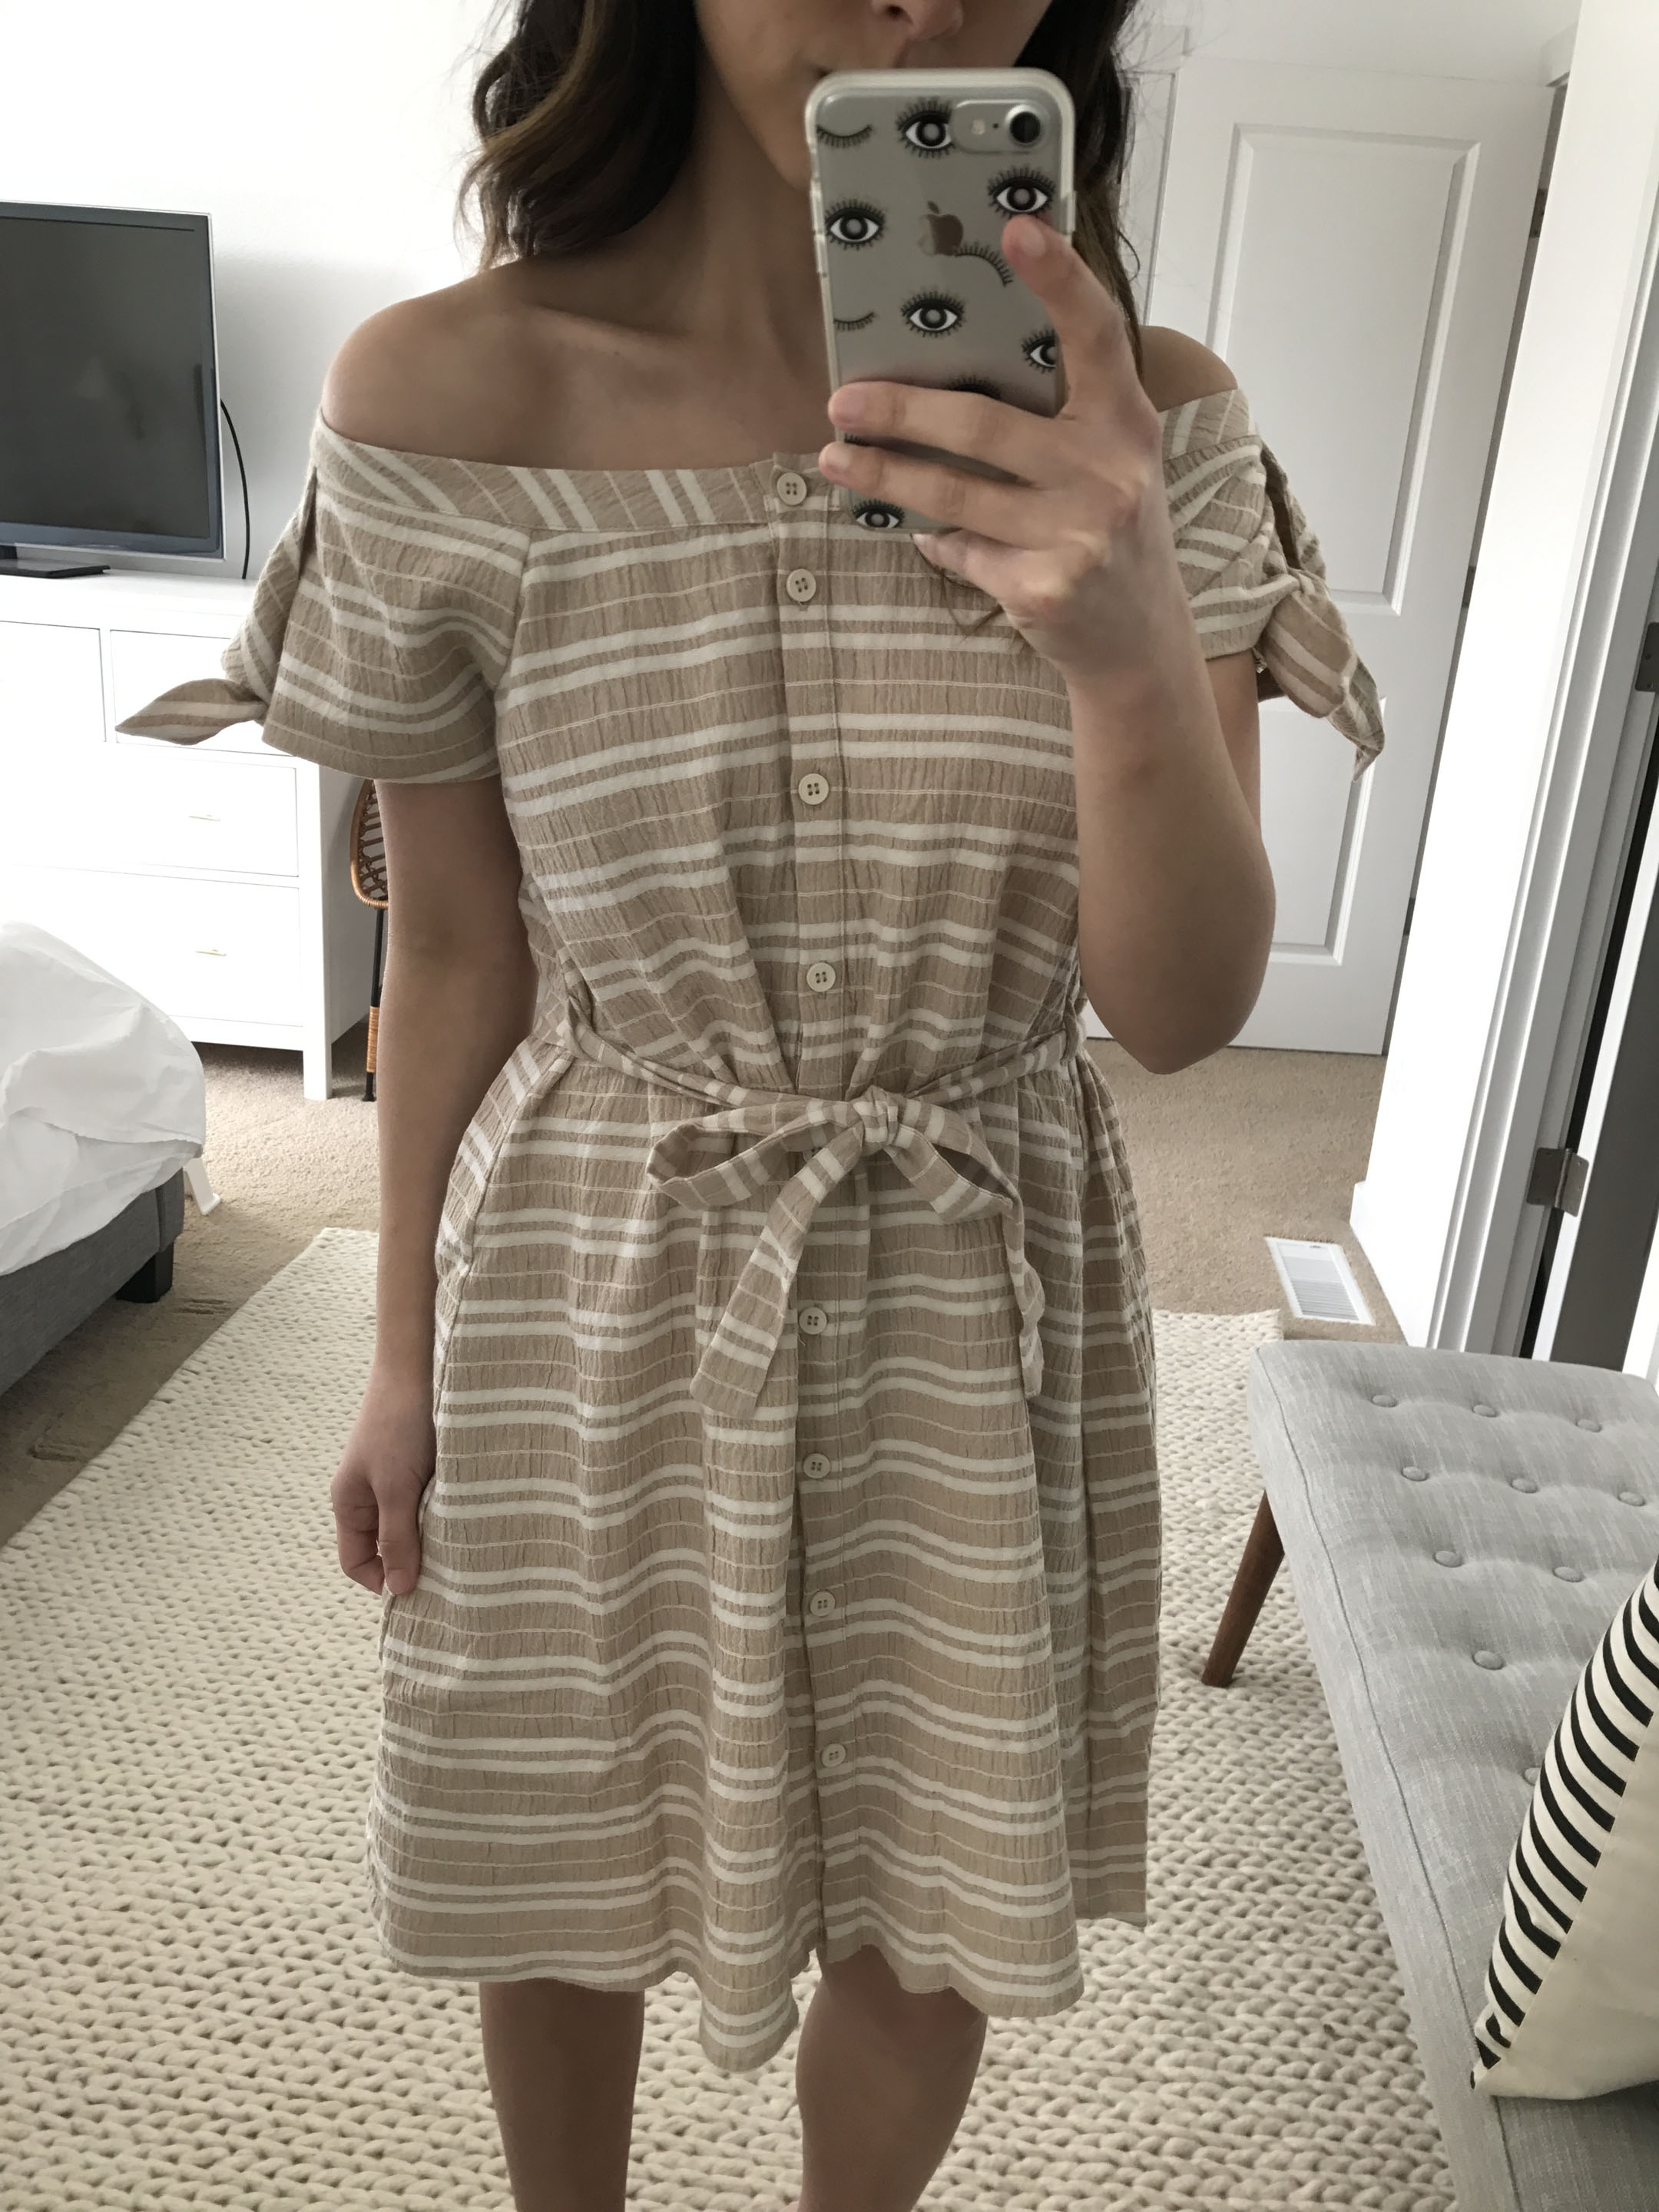 Anthropologie nude dress 4